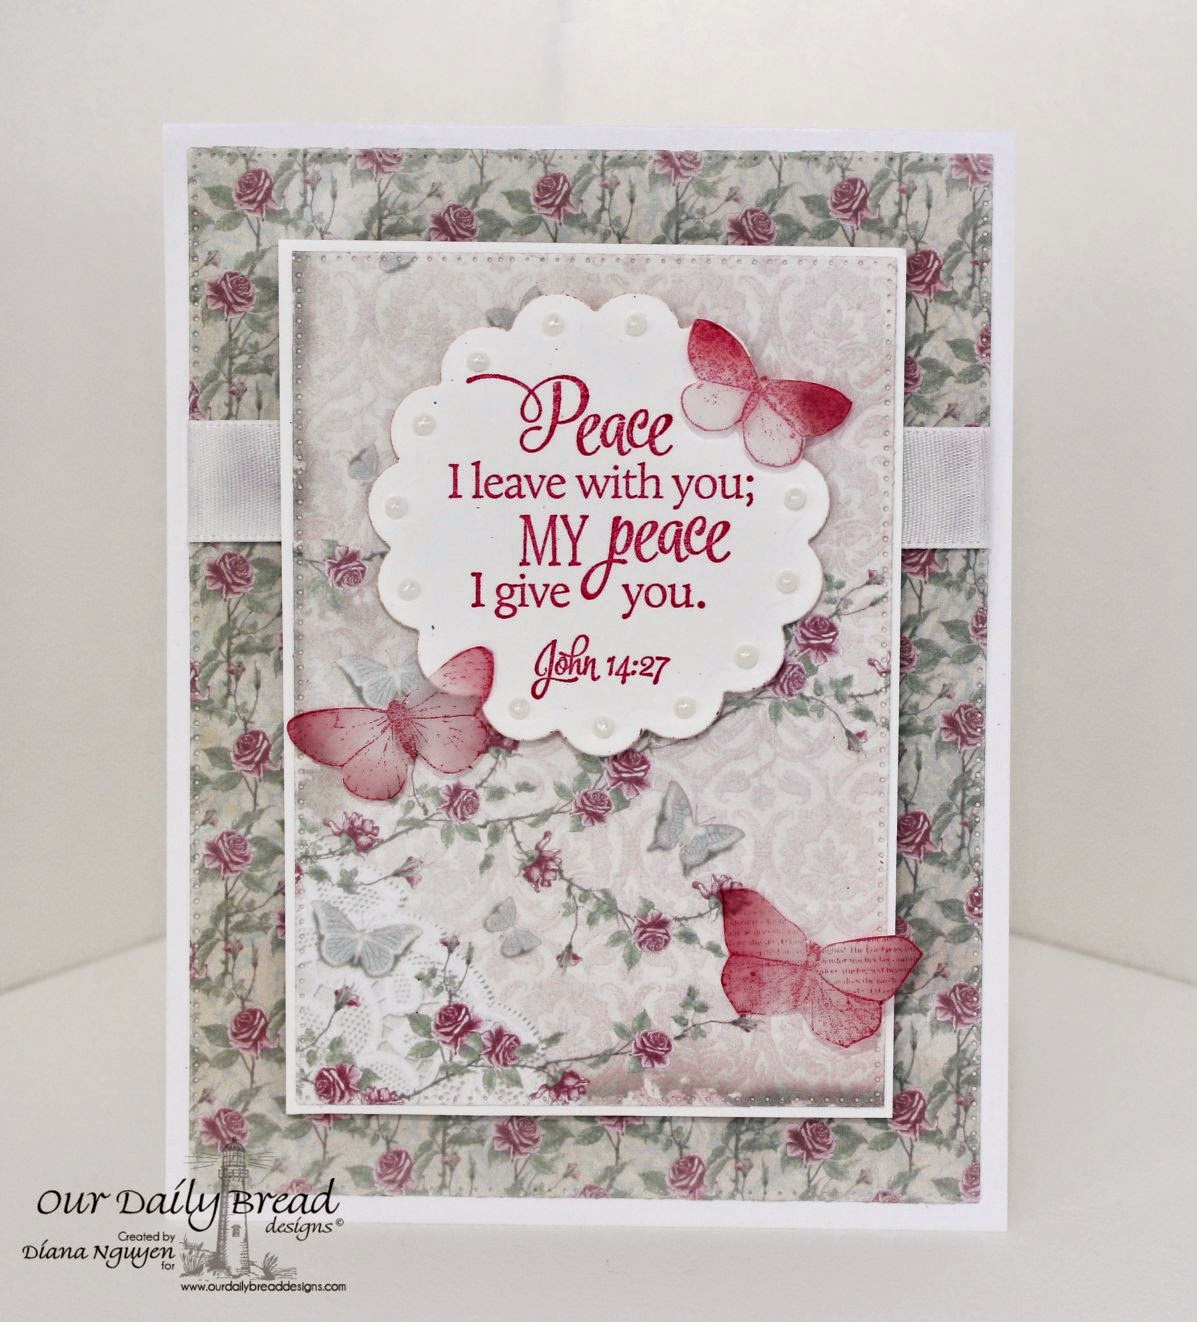 Our Daily Bread Designs, Scripture Collection, Recipe & Tag, Flourished Star Pattern, Shabby Rose Collection, designed by Diana Nguyen